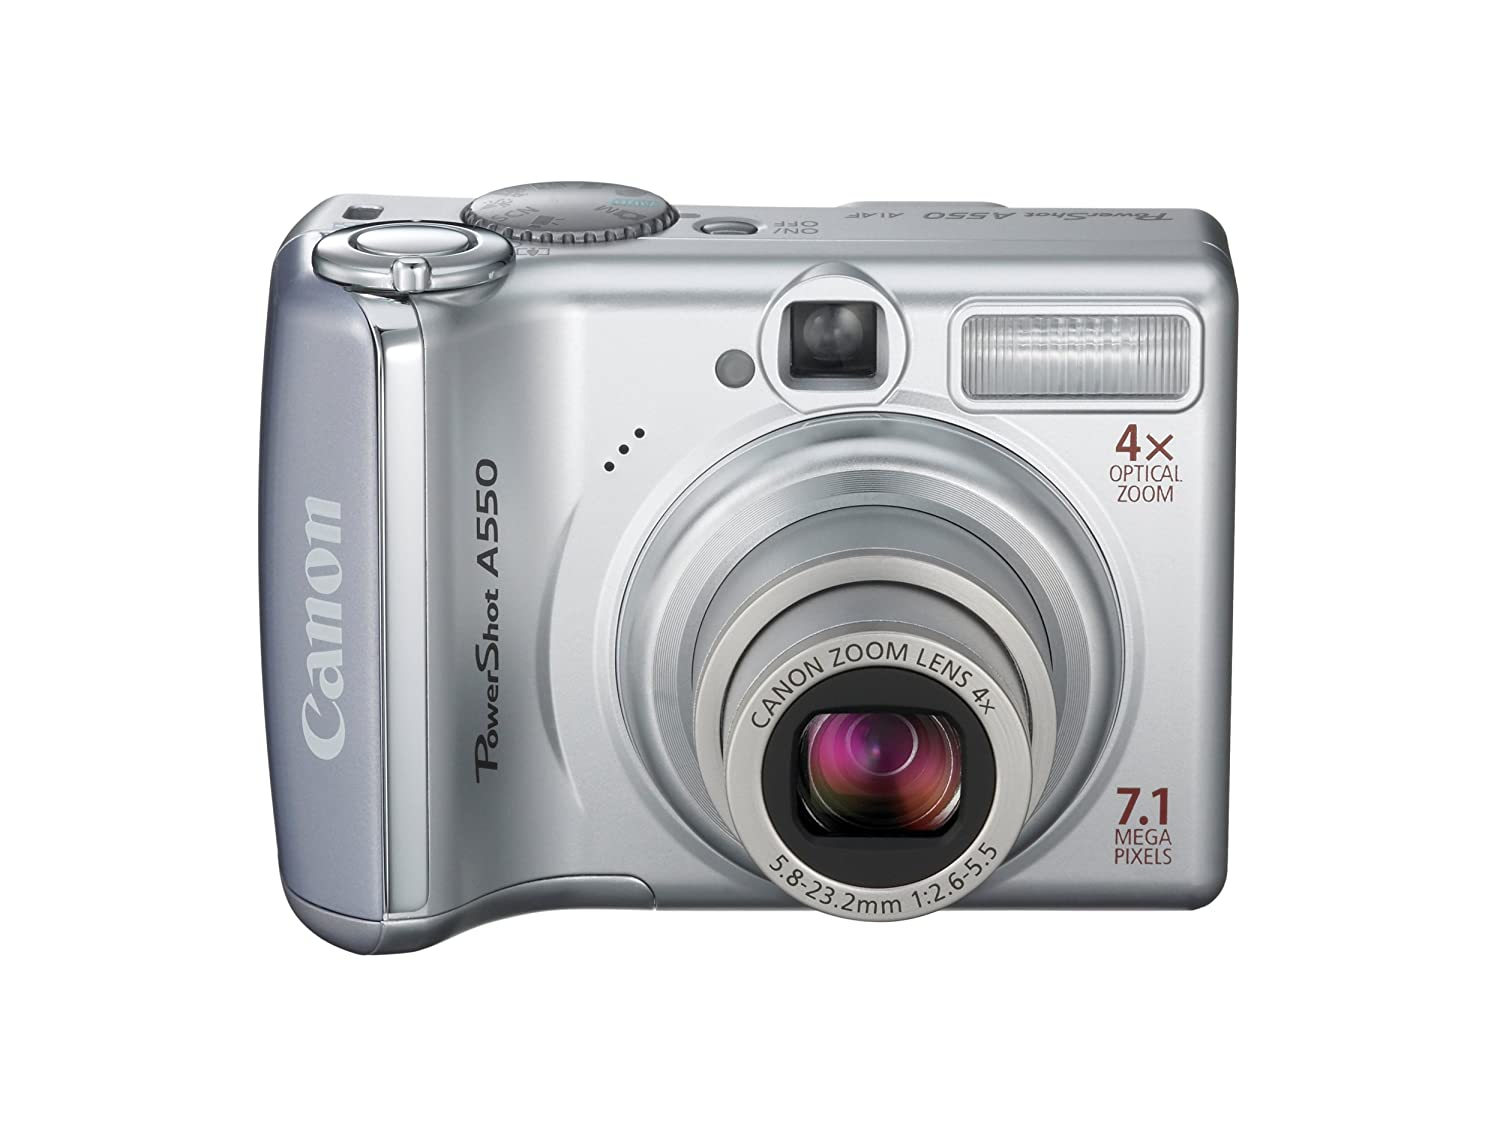 CANON POWERSHOT A550 DRIVERS DOWNLOAD